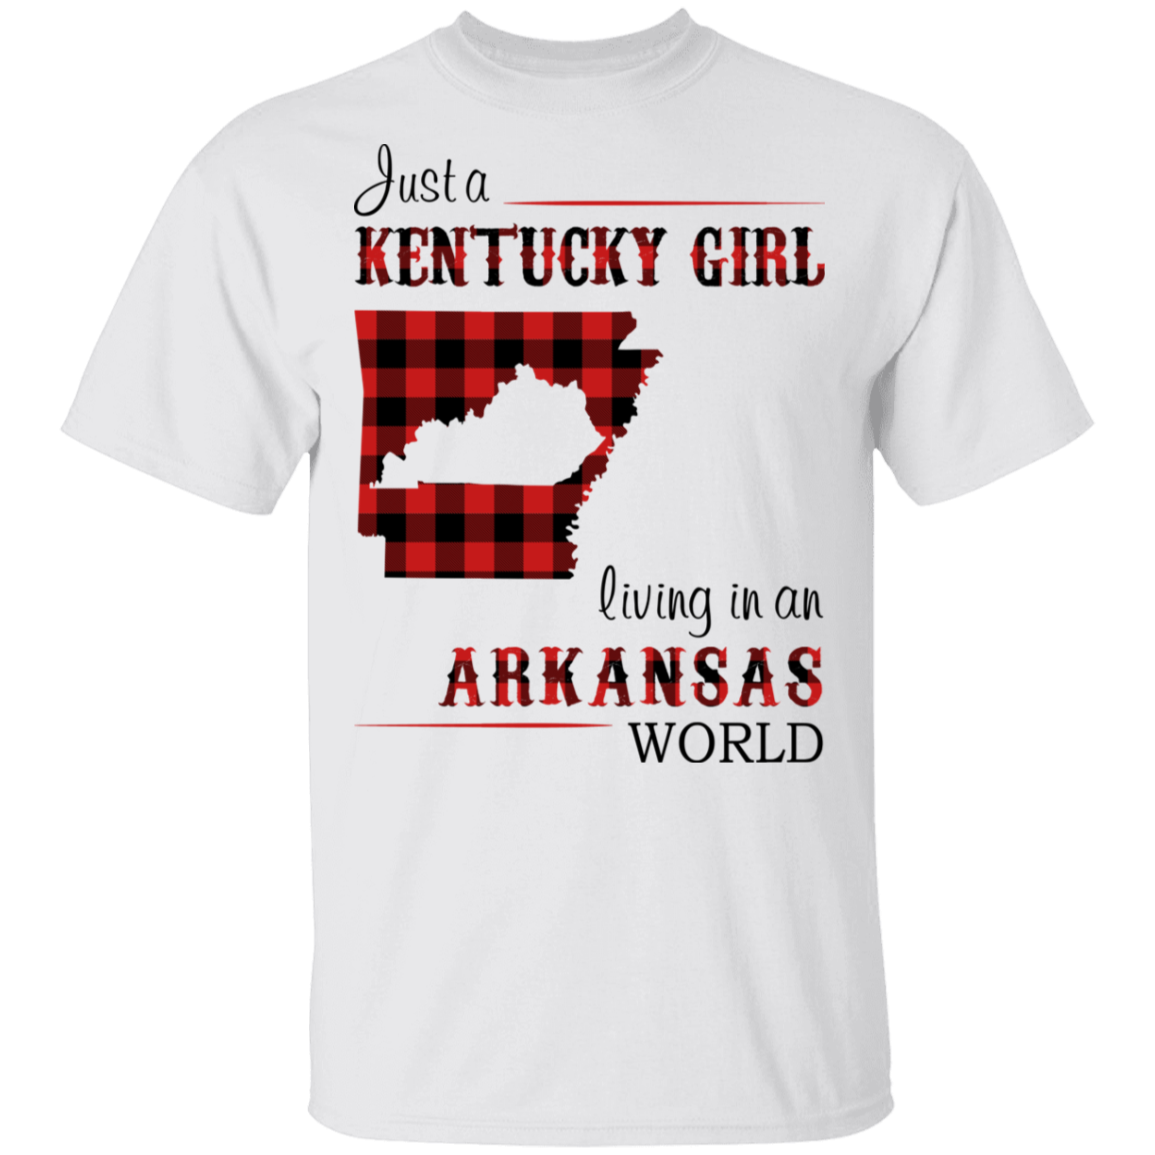 JUST A KENTUCKY GIRL LIVING IN AN ARKANSAS WORLD